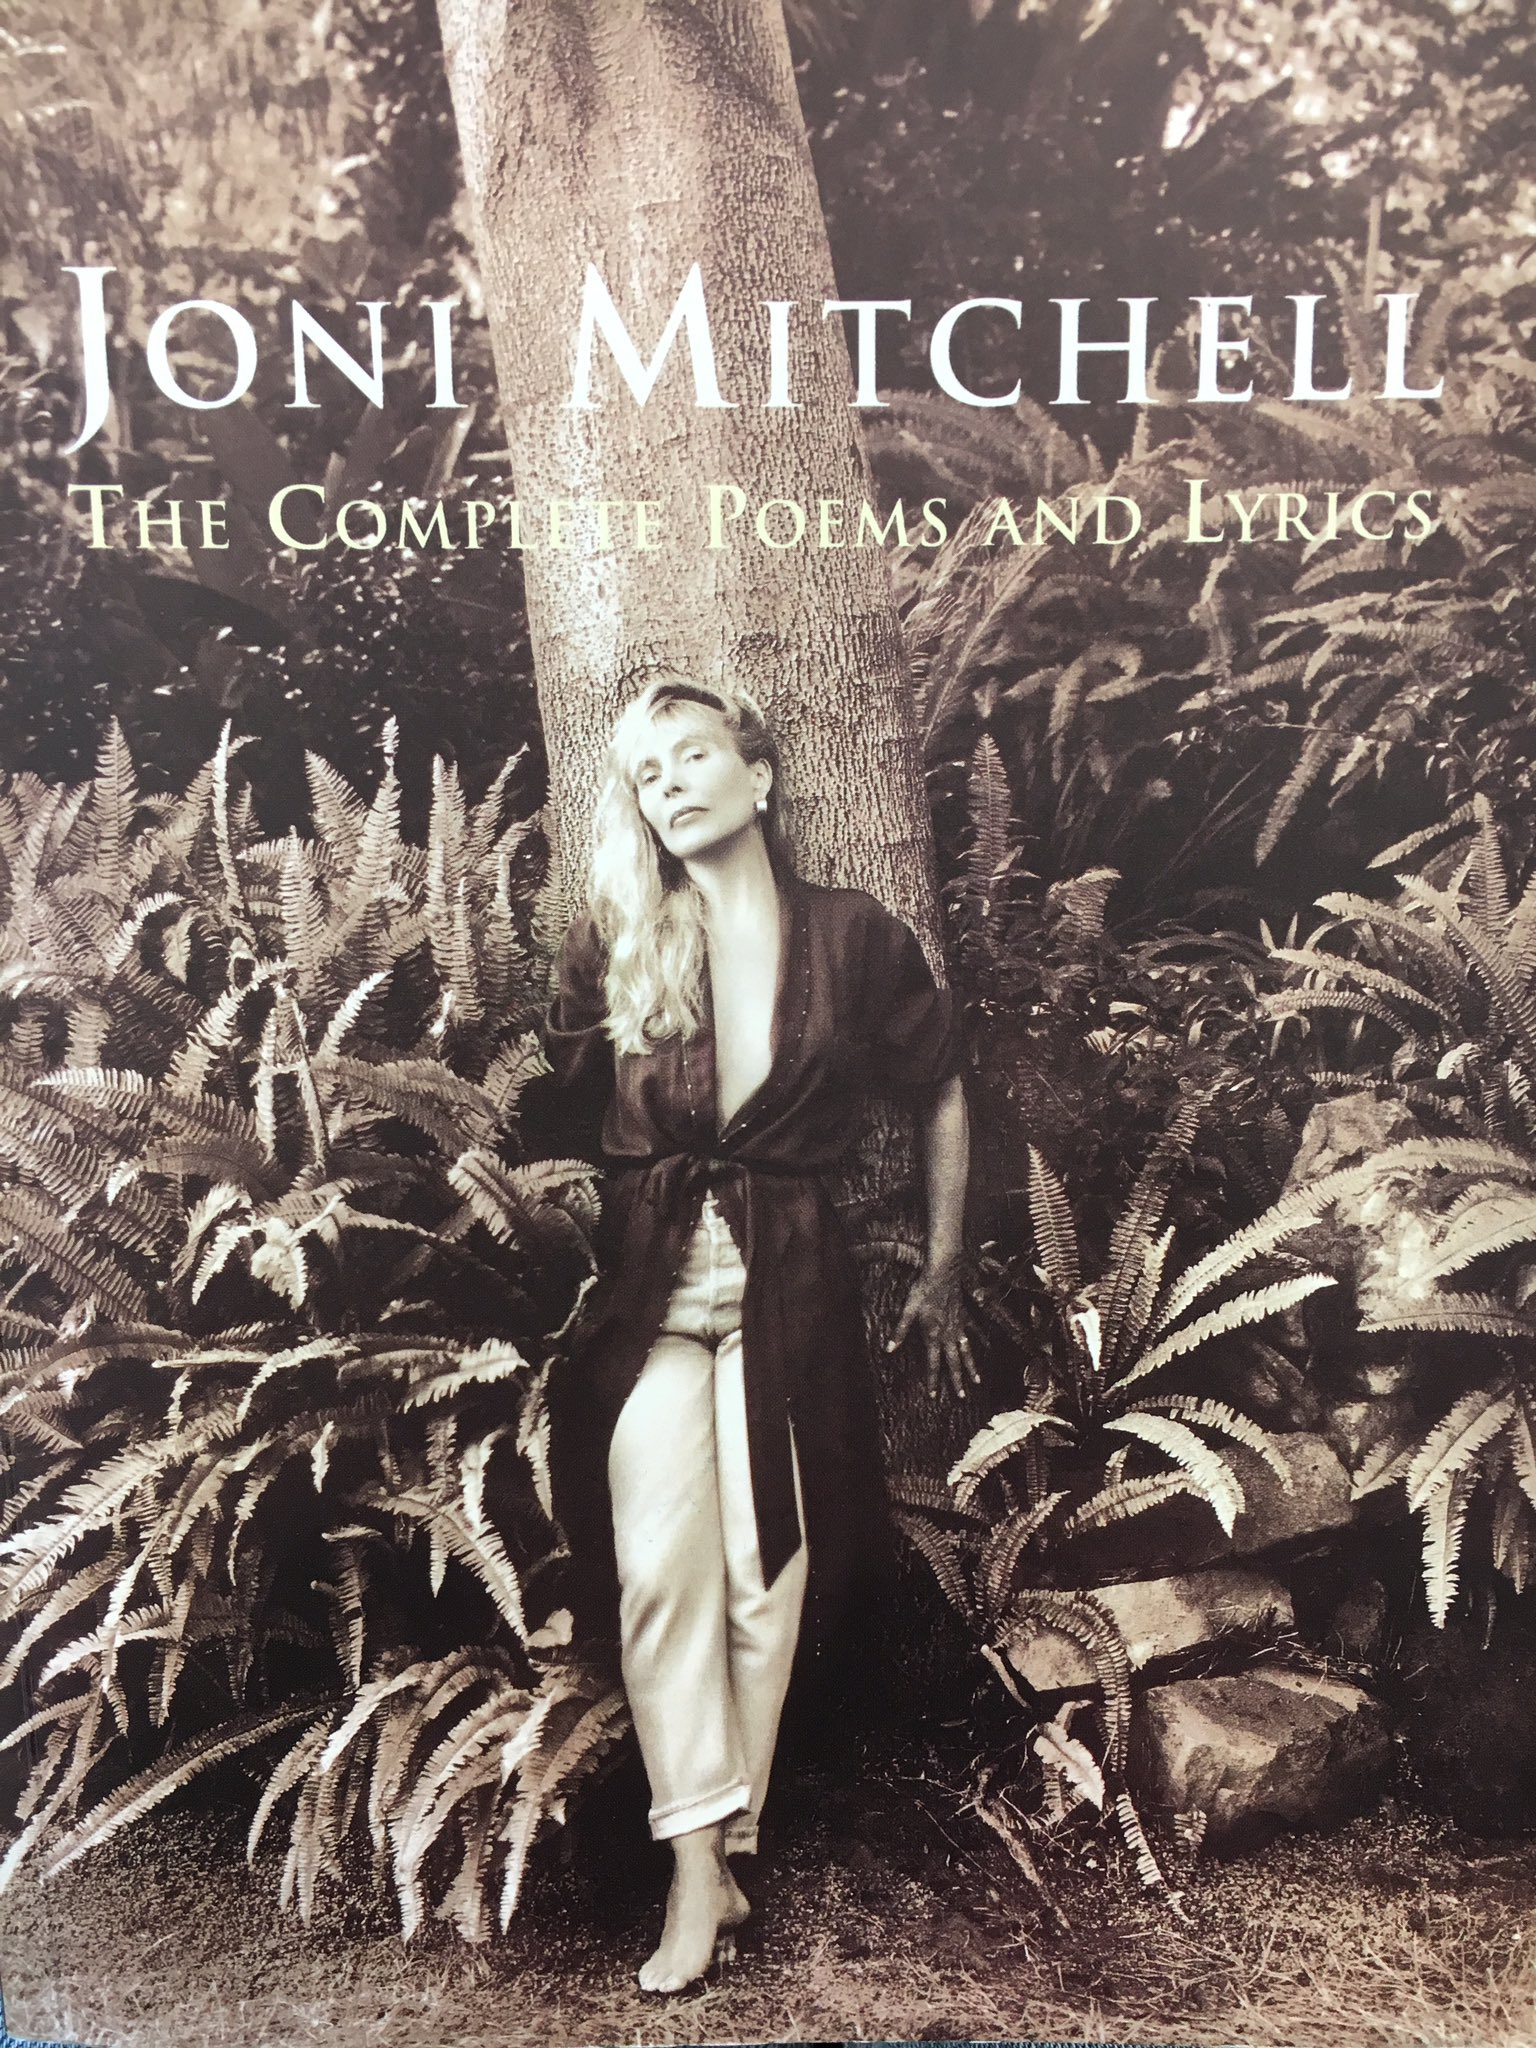 Happy birthday to Joni Mitchell, 74 today and a master lyricist